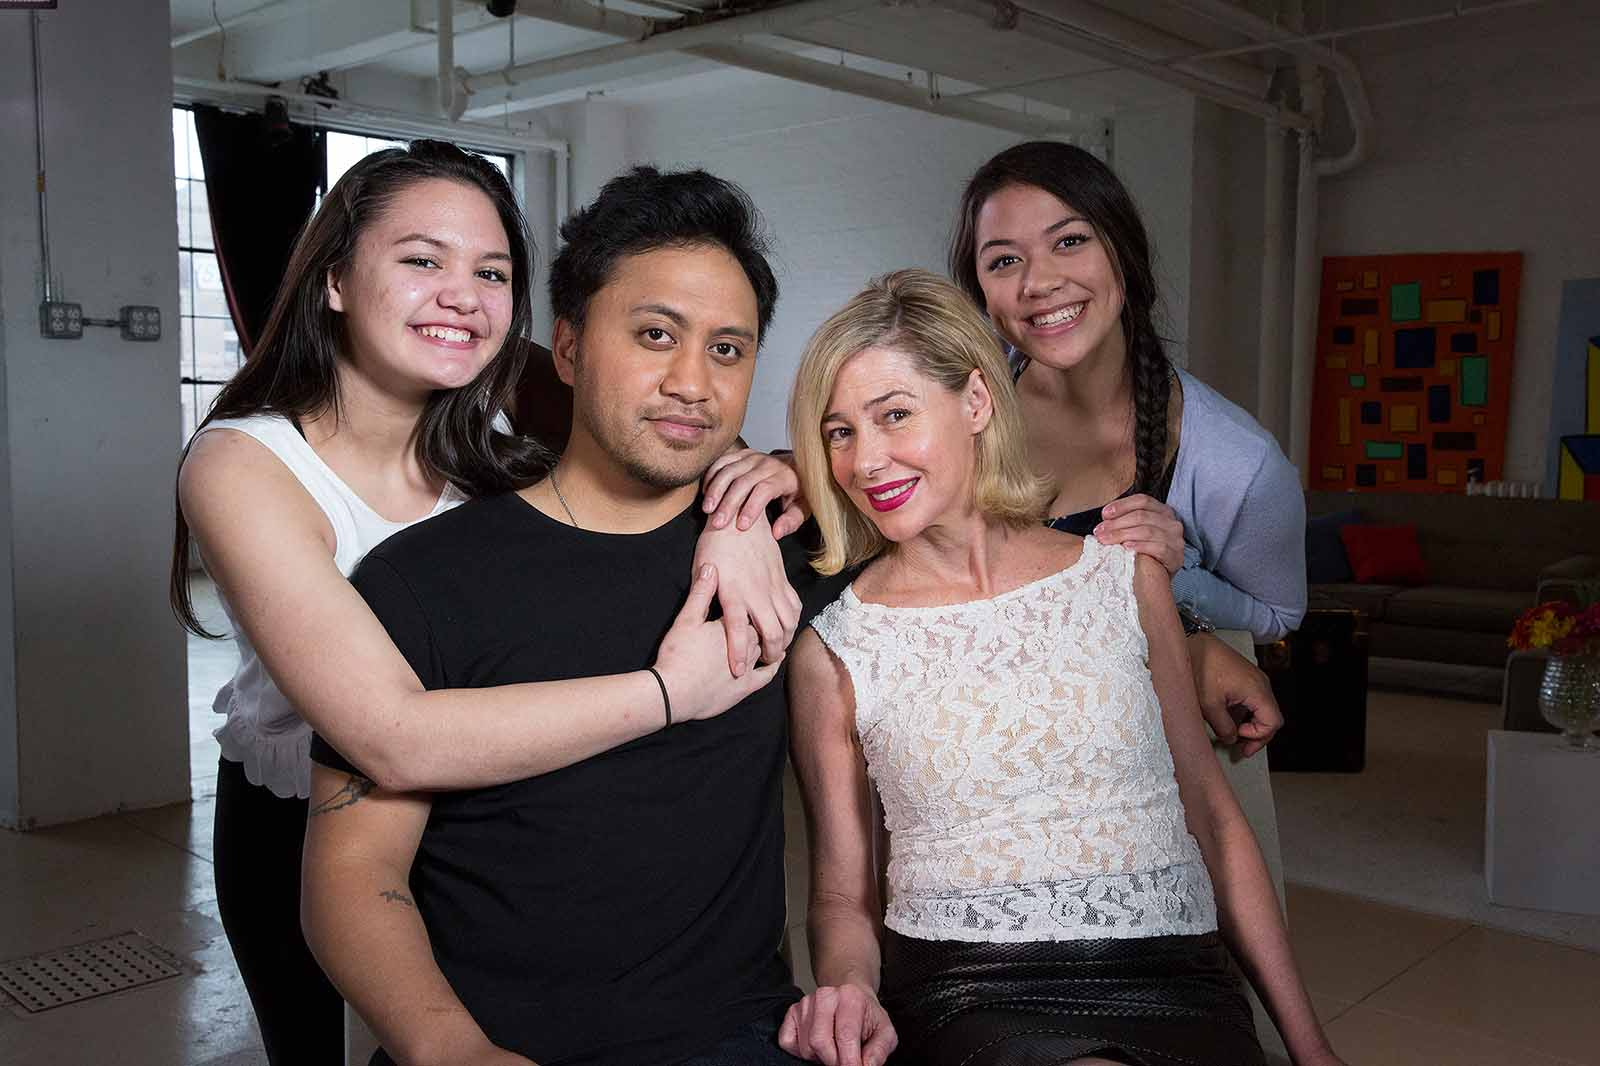 Most affairs don't end in arrest, but for Mary Kay Letourneau, it led to seven years in jail. Relive the former teacher's criminal story.